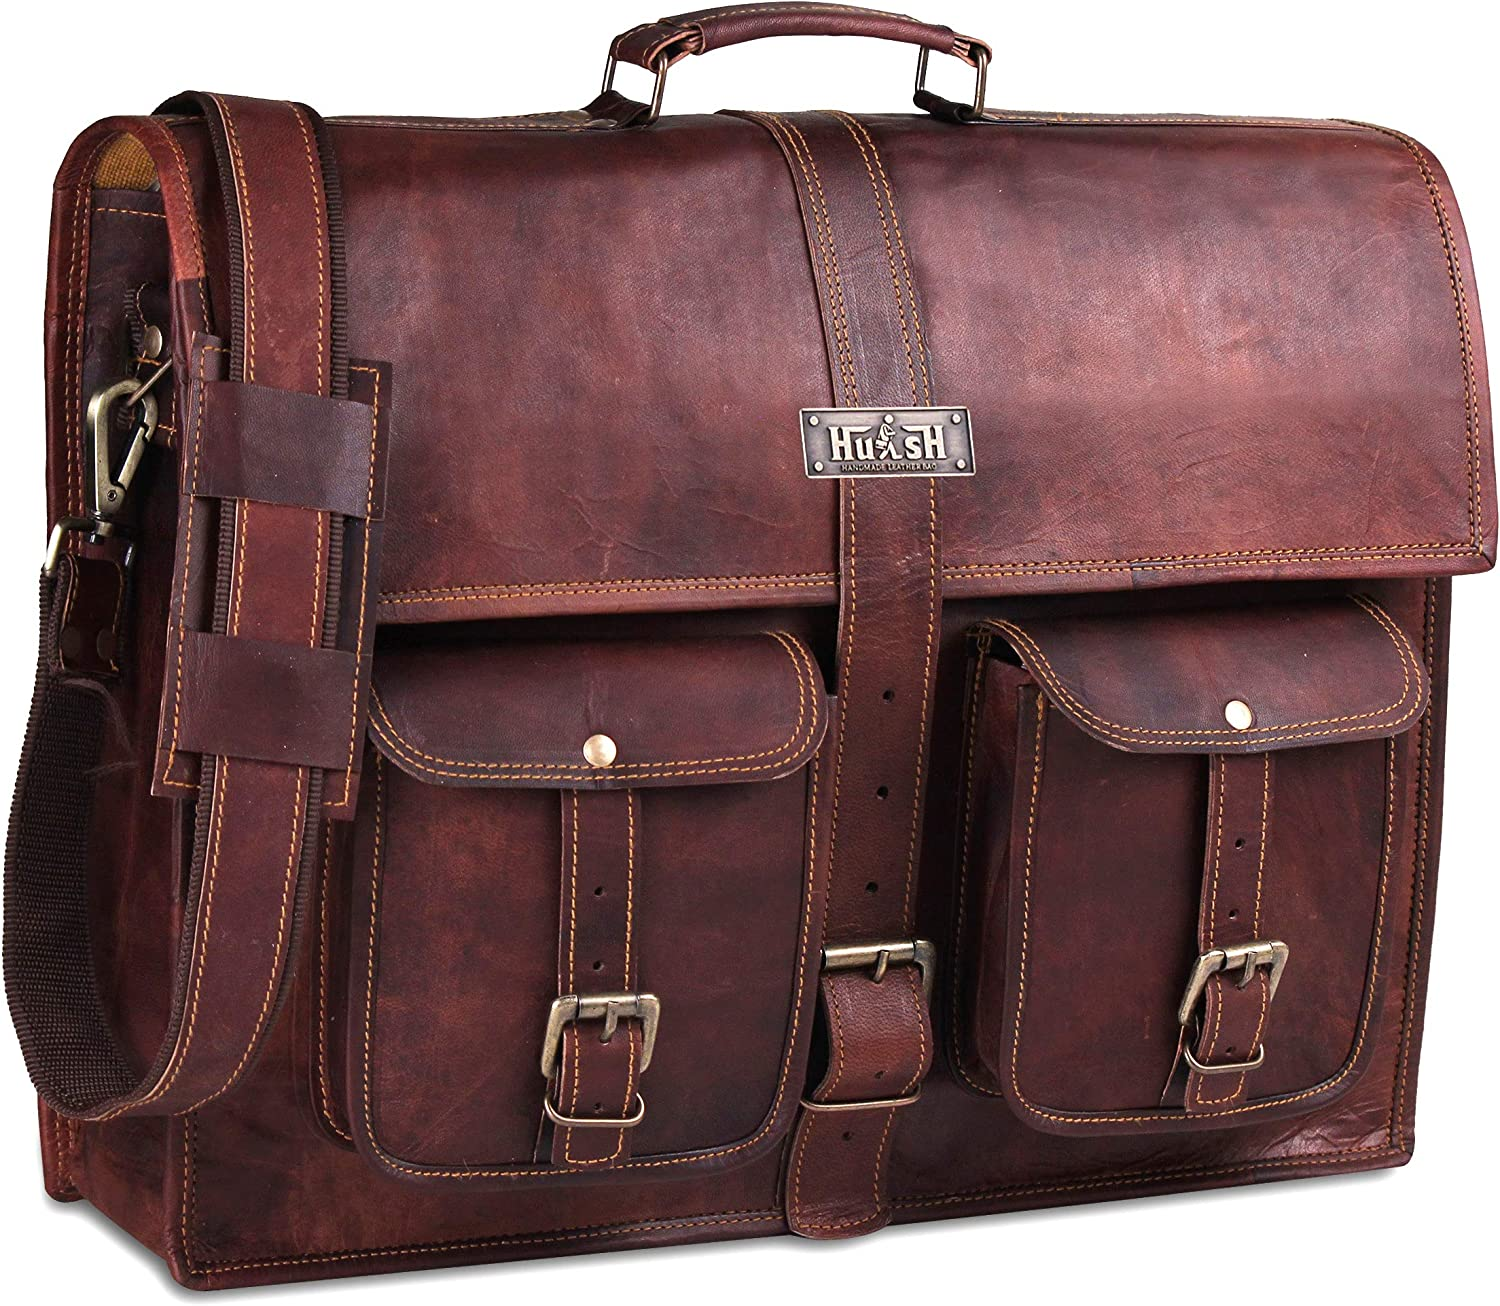 Leather Messenger Bag for Men 18 Inch Vintage Handmade Genuine Leather Laptop Bag for Men - Best fit for Laptops up to 18 Inches with lap top padding With this Leather Computer bag for men by HULSH